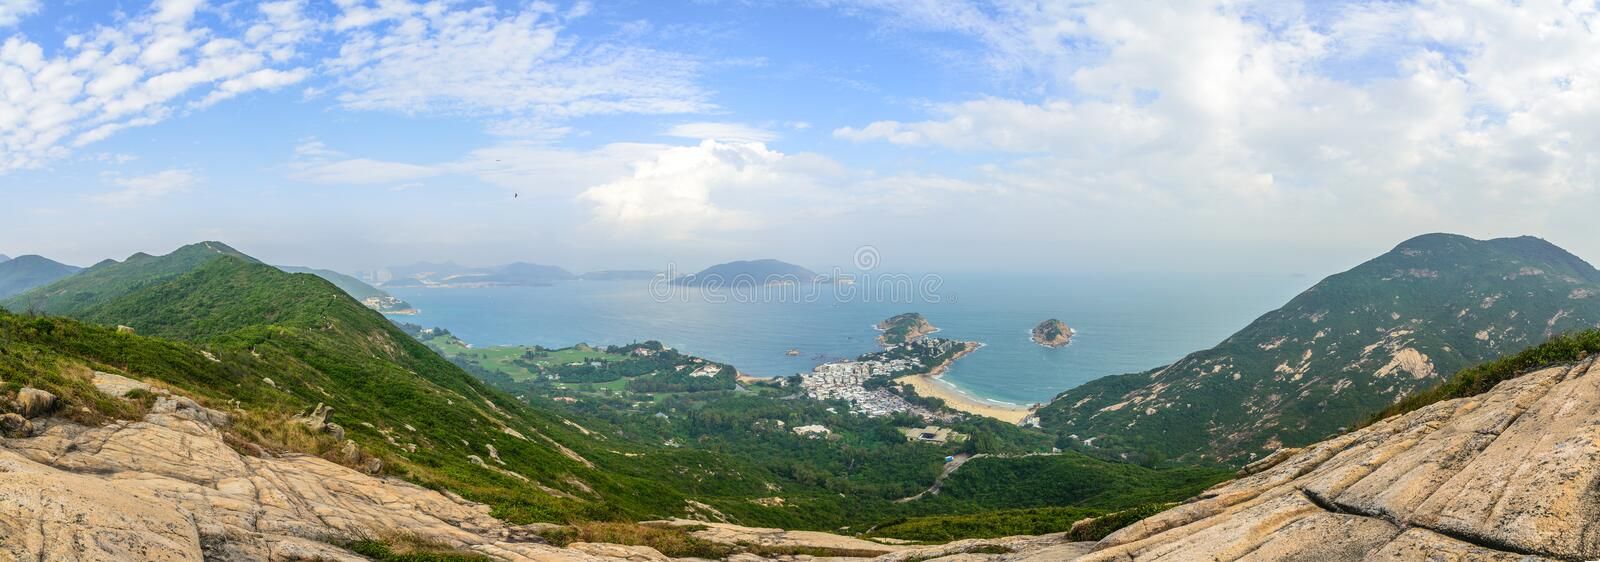 Dragon Back Trail In Hong Kong Stock Image - Image of autumn. most: 59347319